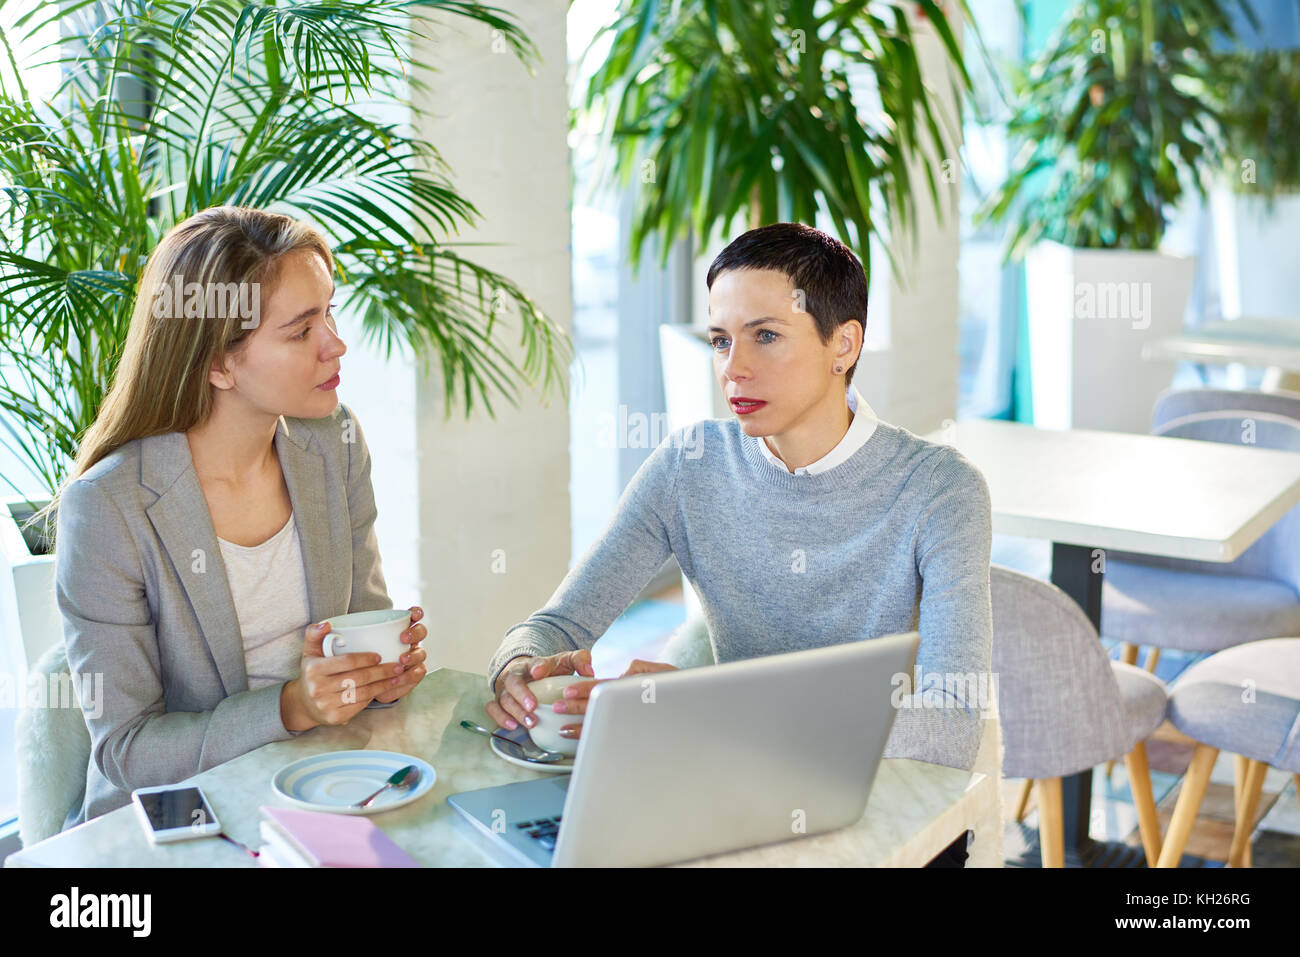 Portrait of successful businesswoman with short hair talking to female colleague discussing work and using laptop - Stock Image